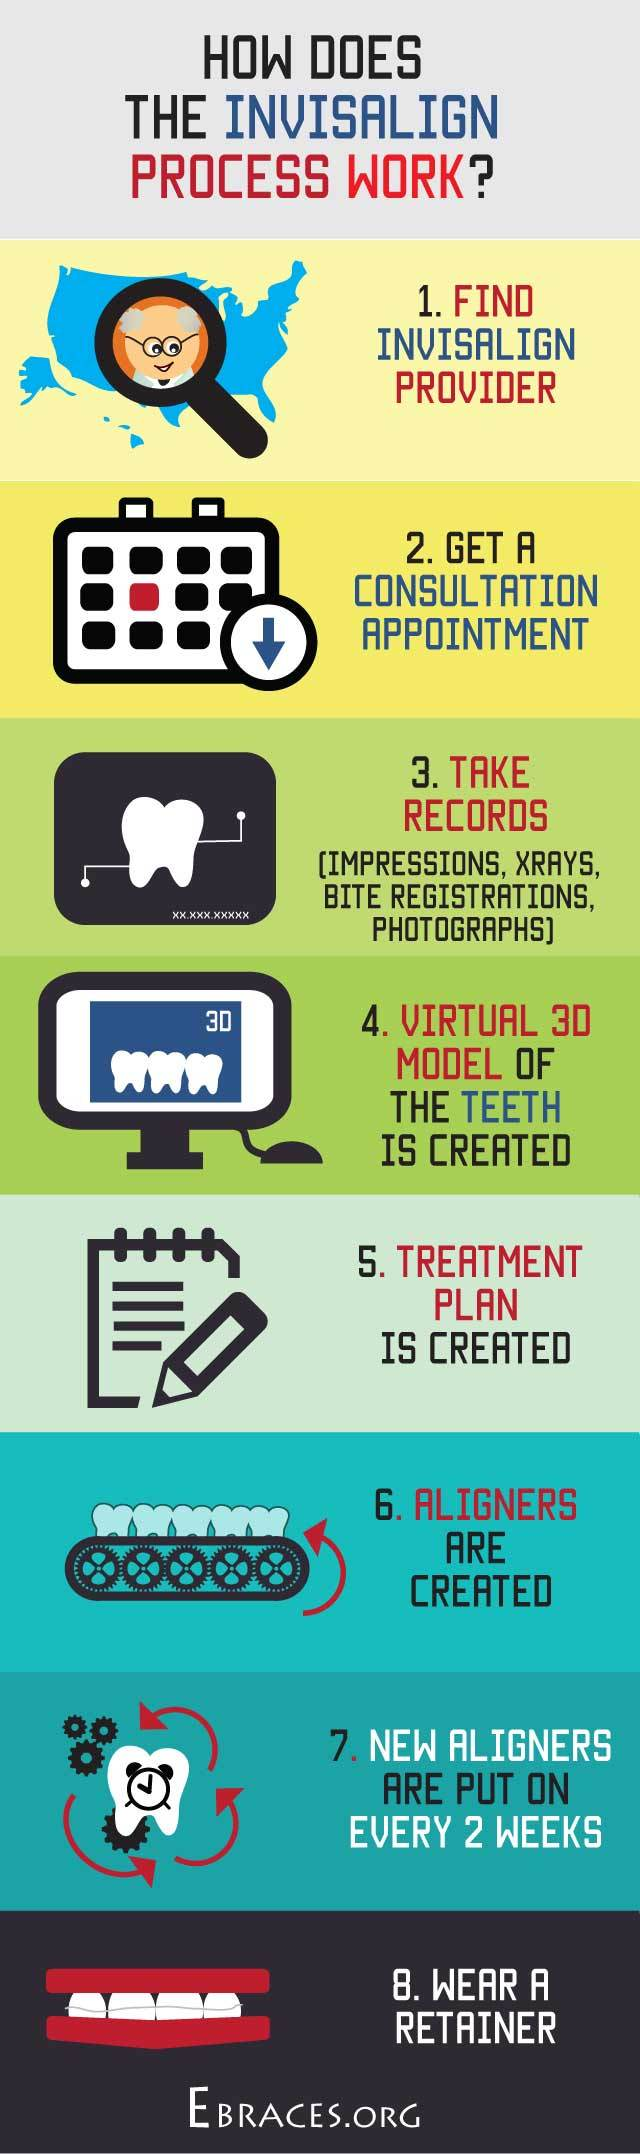 invisalign process infographic